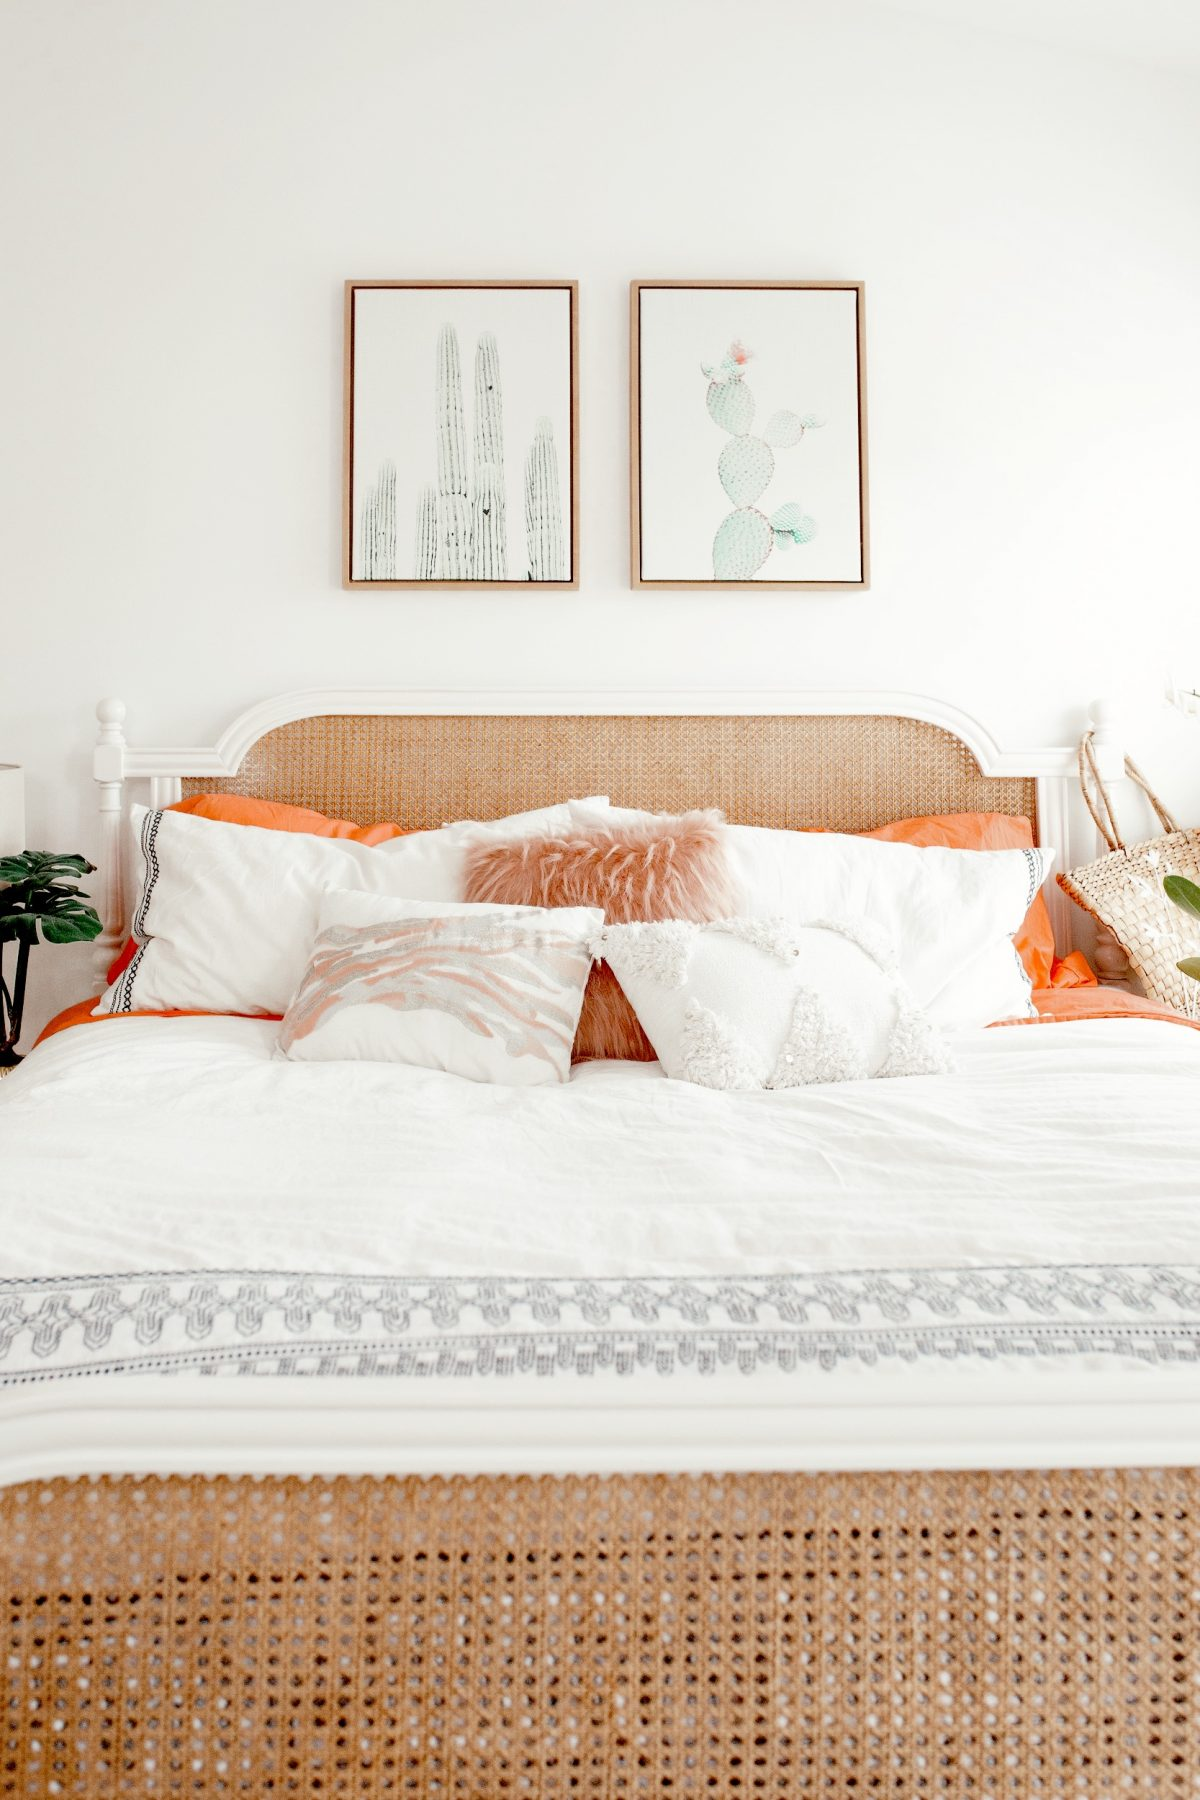 Boho Chic Bedroom Decor Inspiration